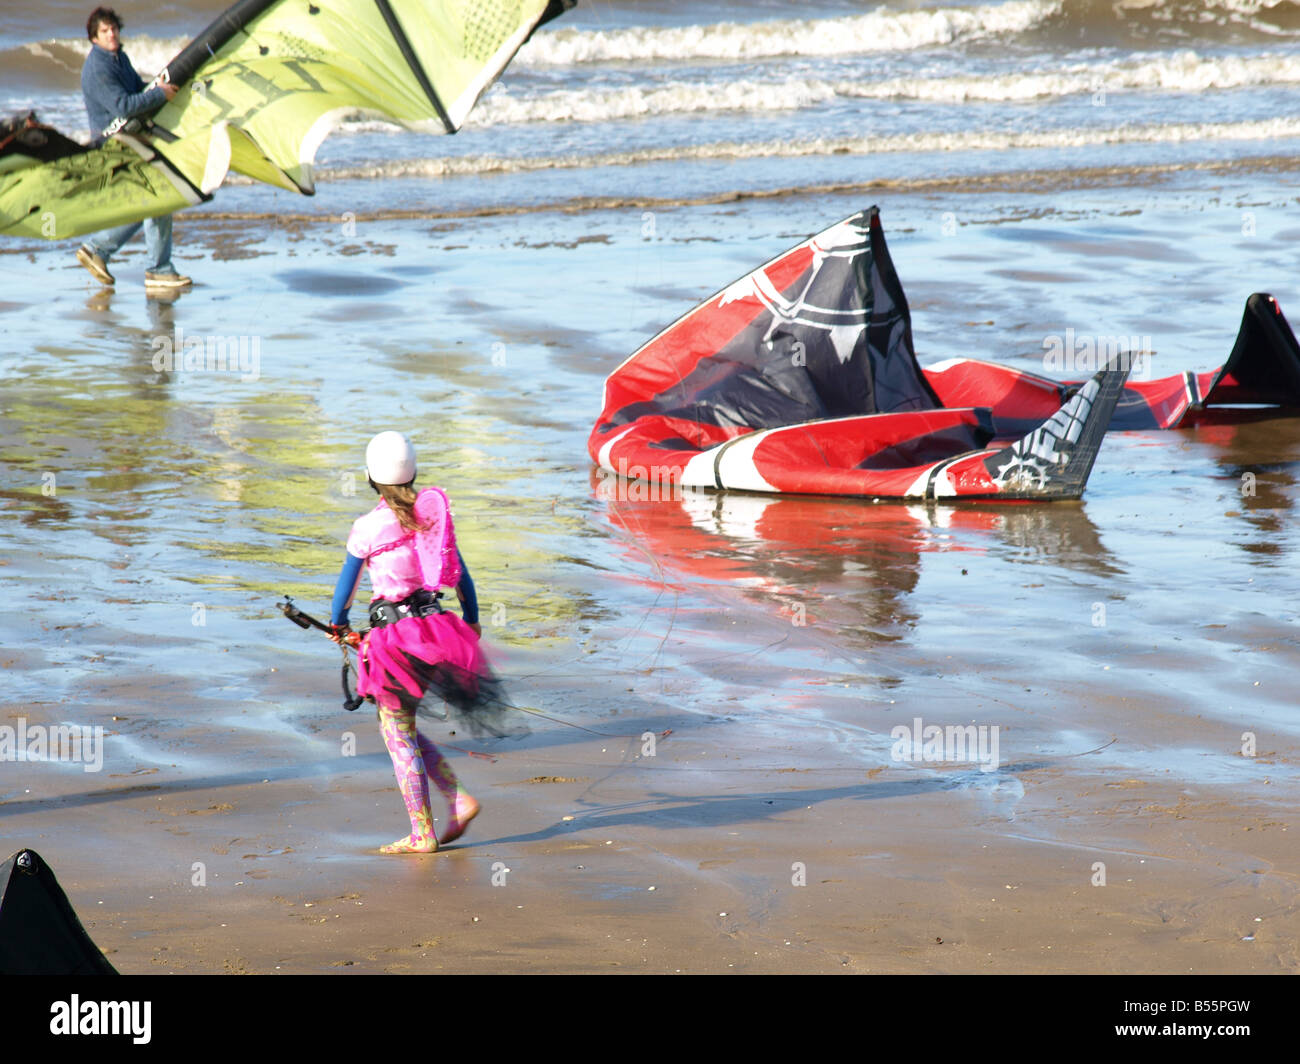 Surfing kites and a girl in fancy dress on the beach at Hunstanton,Norfolk,Easr Anglia,uk. Stock Photo